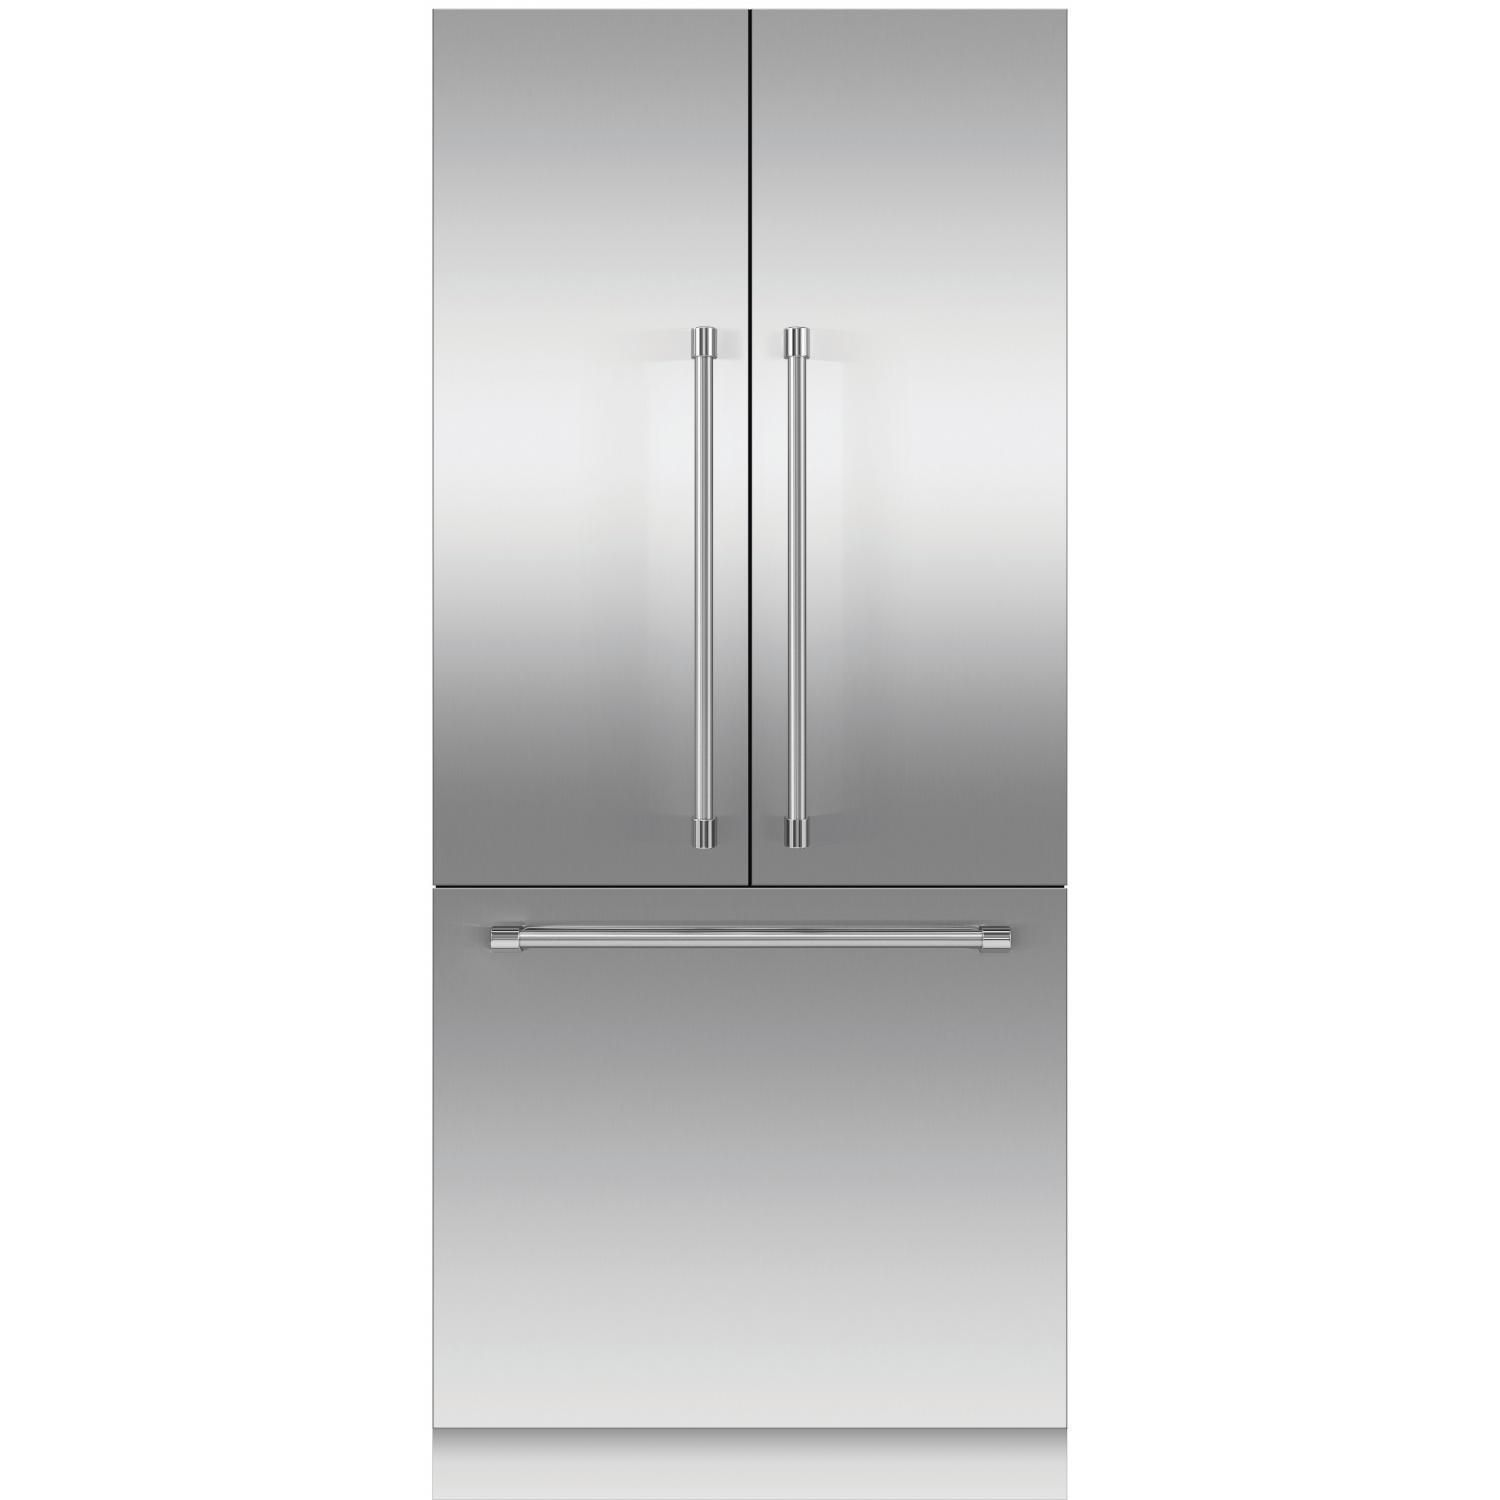 Fisher Paykel Professional Formerly Dcs 84 Inch Built In French Door Refrigerator With Stainless Steel Panels Stainless Steel Panels Stainless Steel Refrigerator Panel Doors